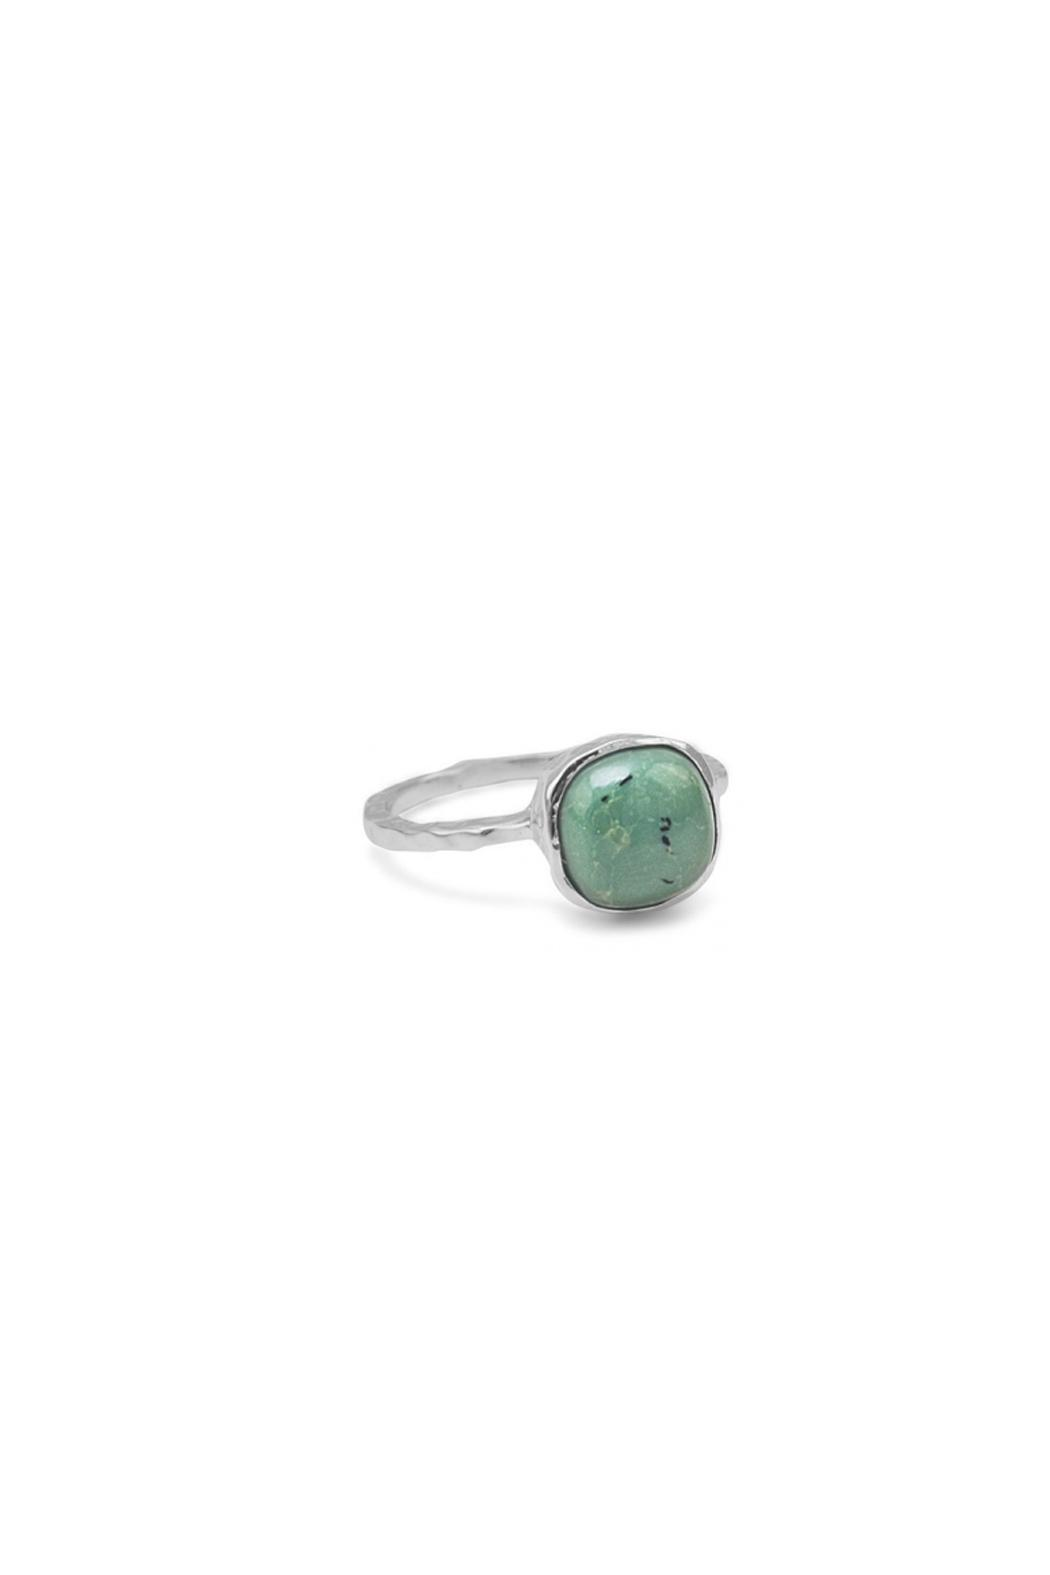 Wild Lilies Jewelry  Square Turquoise Ring - Main Image